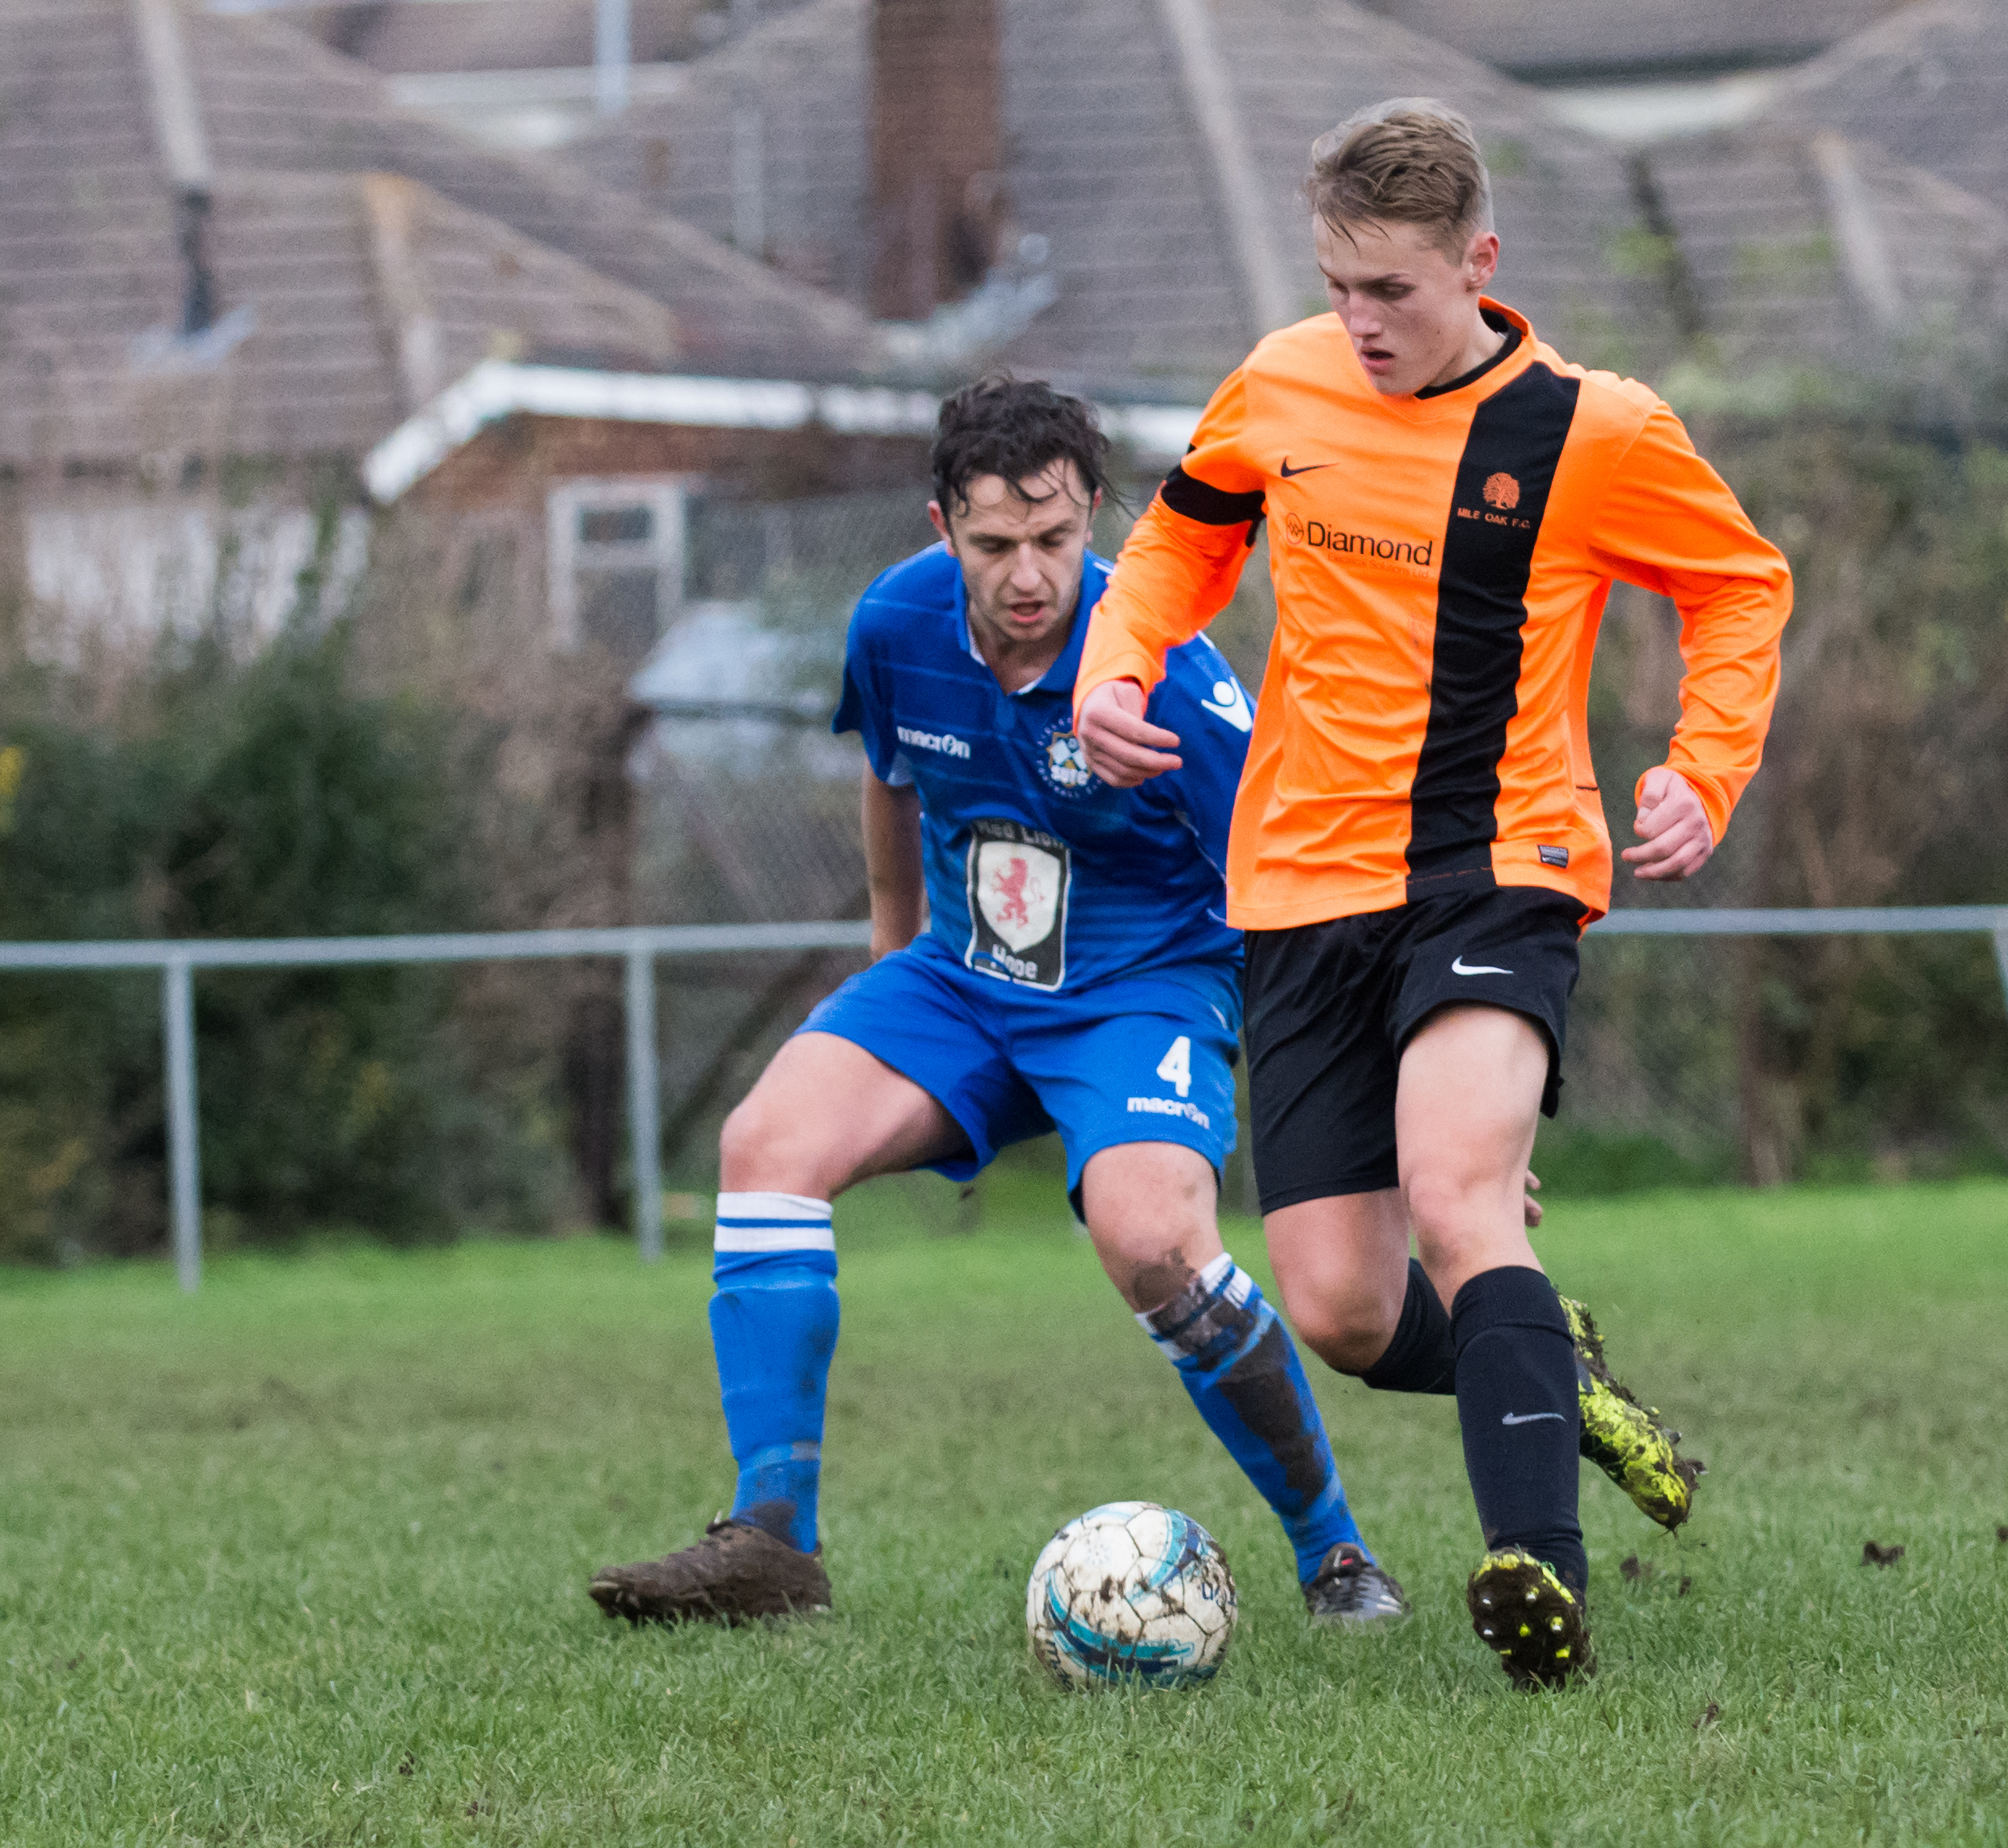 Mile Oak Res vs Sidley United 09.12.17 36